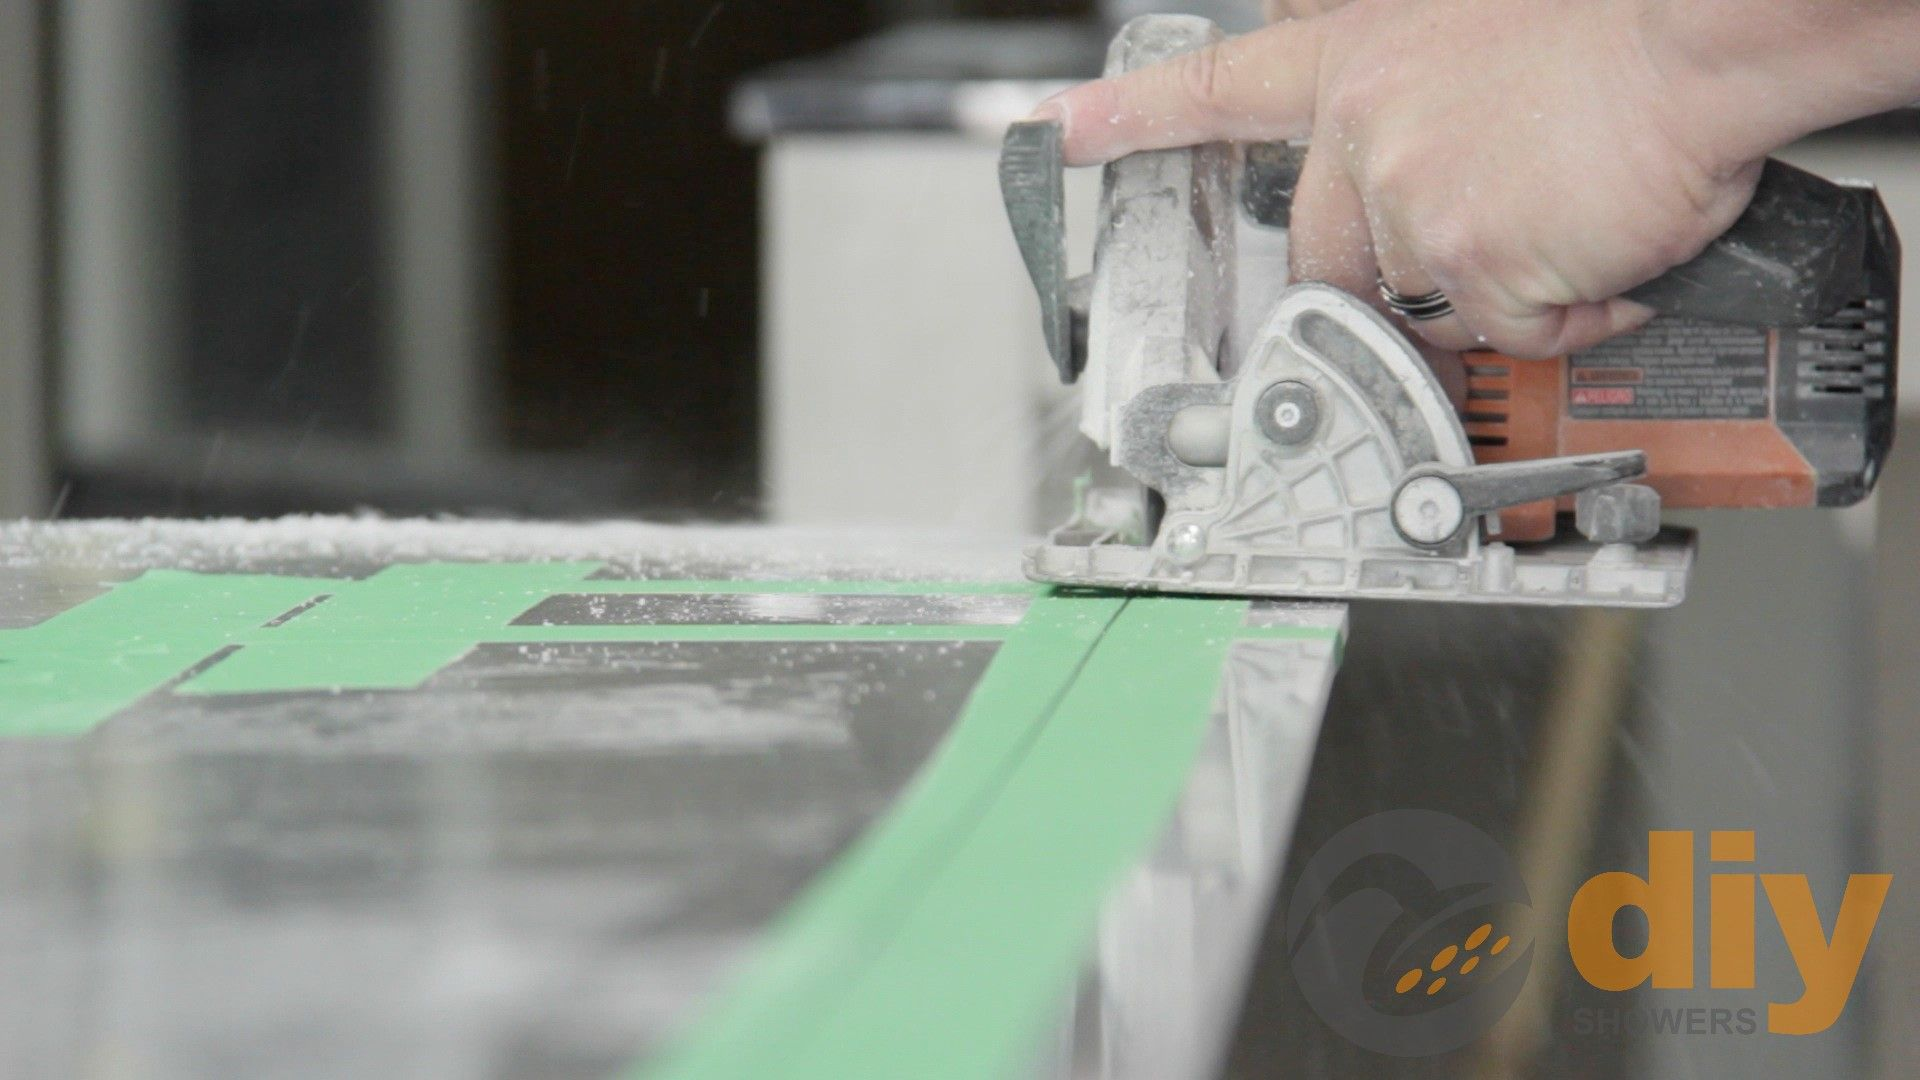 Cutting an onyx shower panel with a circular saw fine toothed cutting an onyx shower panel with a circular saw fine toothed plywood blade greentooth Images